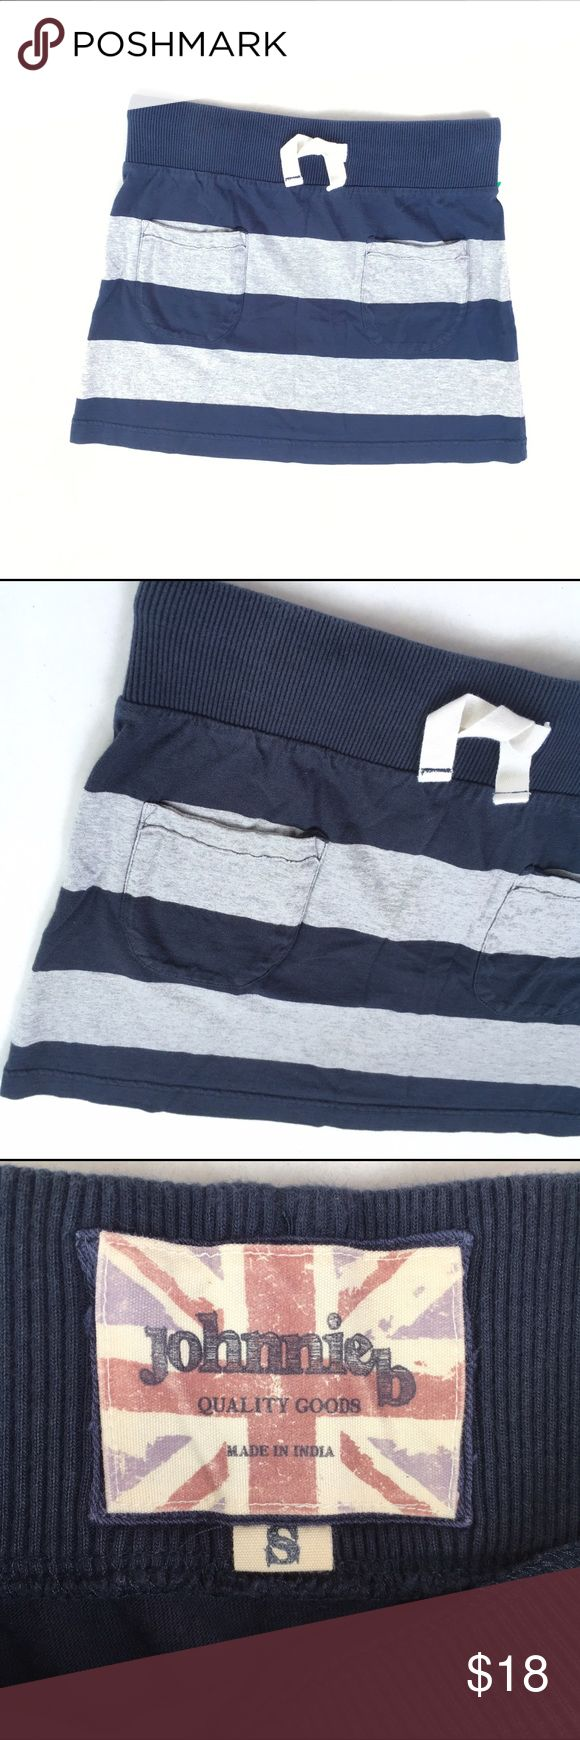 Johnnie B Gray & Navy Striped Skirt, small Johnnie B Gray & Navy Striped jersey Knit Skirt, size small. Front pockets. Drawstring waist. In very good pre-owned condition!  🎀I carry all Sizes! Search for your size: 🎀BUNDLE and SAVE! 🎀REASONABLE offers WELCOME 🎀NO TRADES NO HOLDS 🎀Thank you for stopping by!❤️ Mini Boden Bottoms Skirts